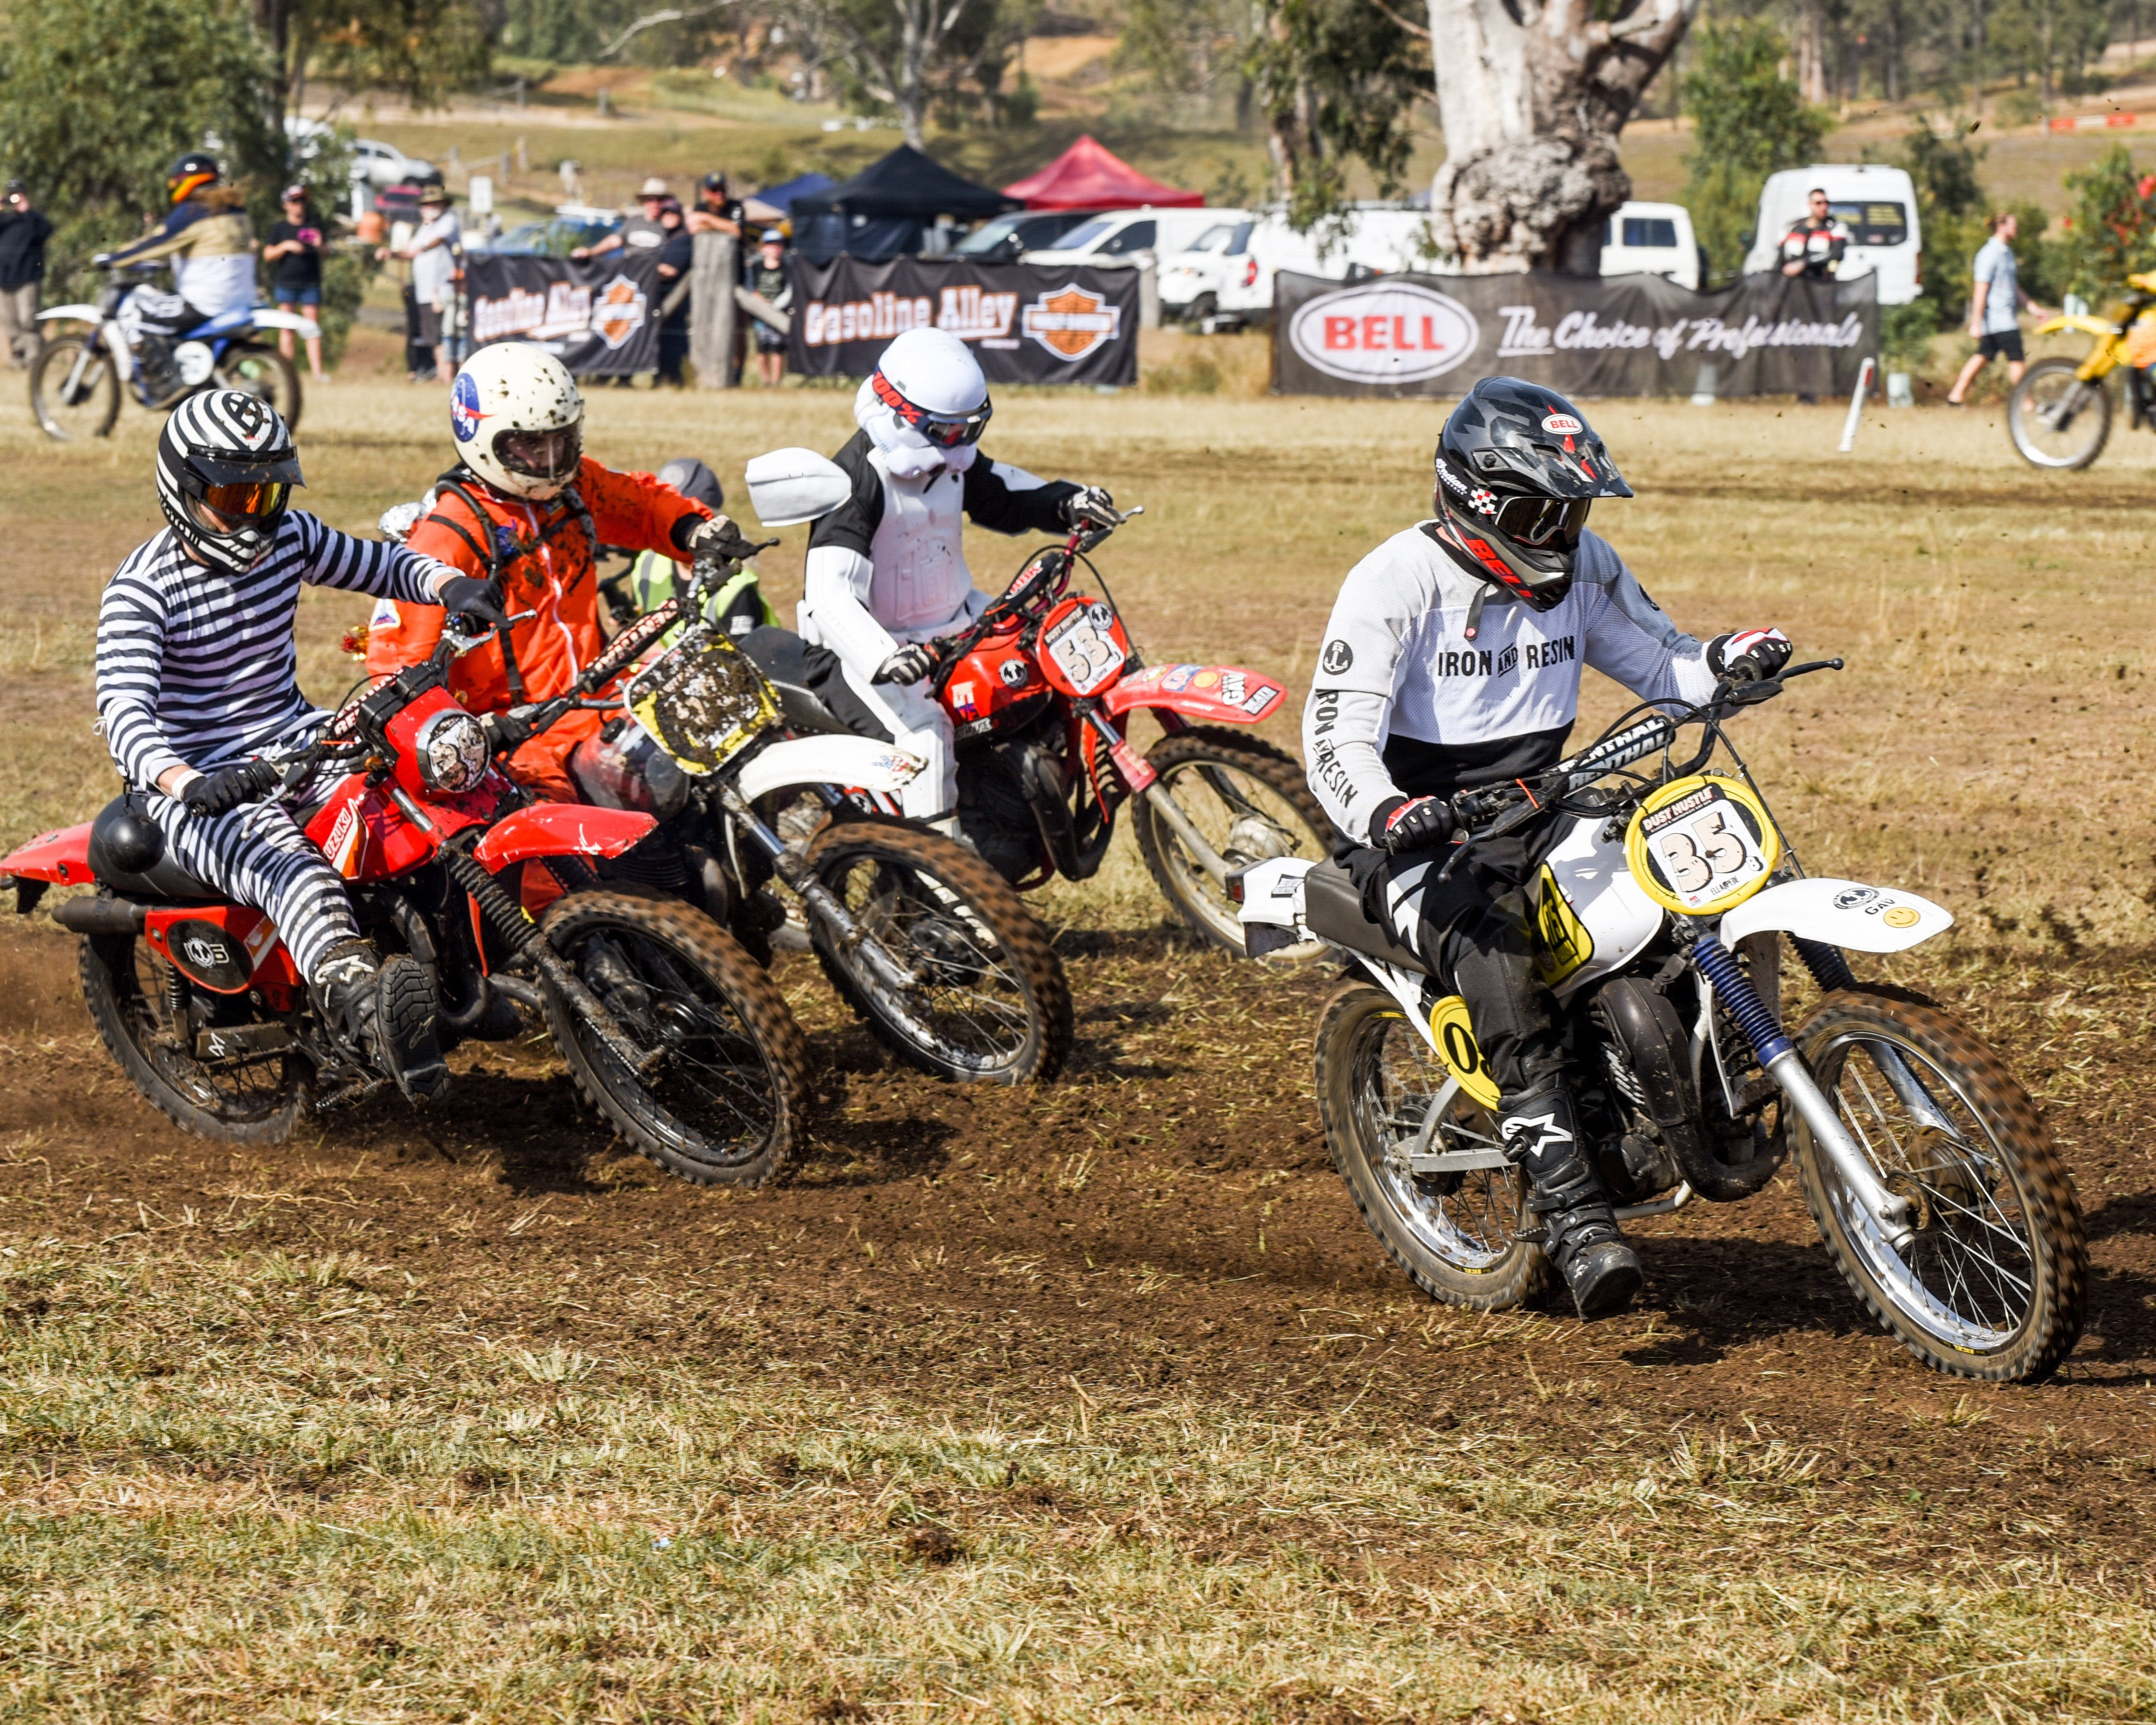 Dust Hustle Queensland Moto Park - Victoria Tourism